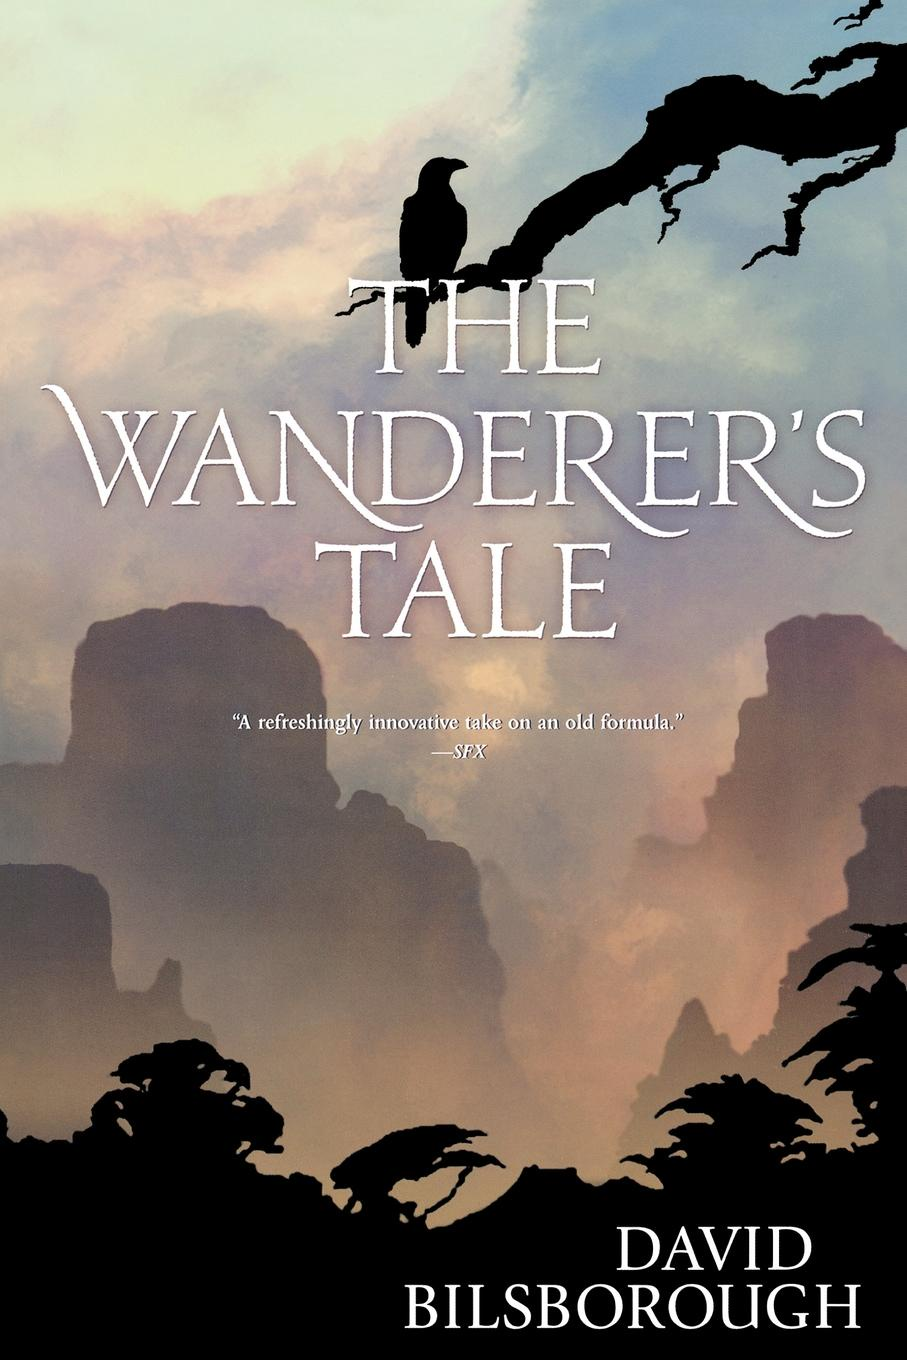 David Bilsborough The Wanderer's Tale